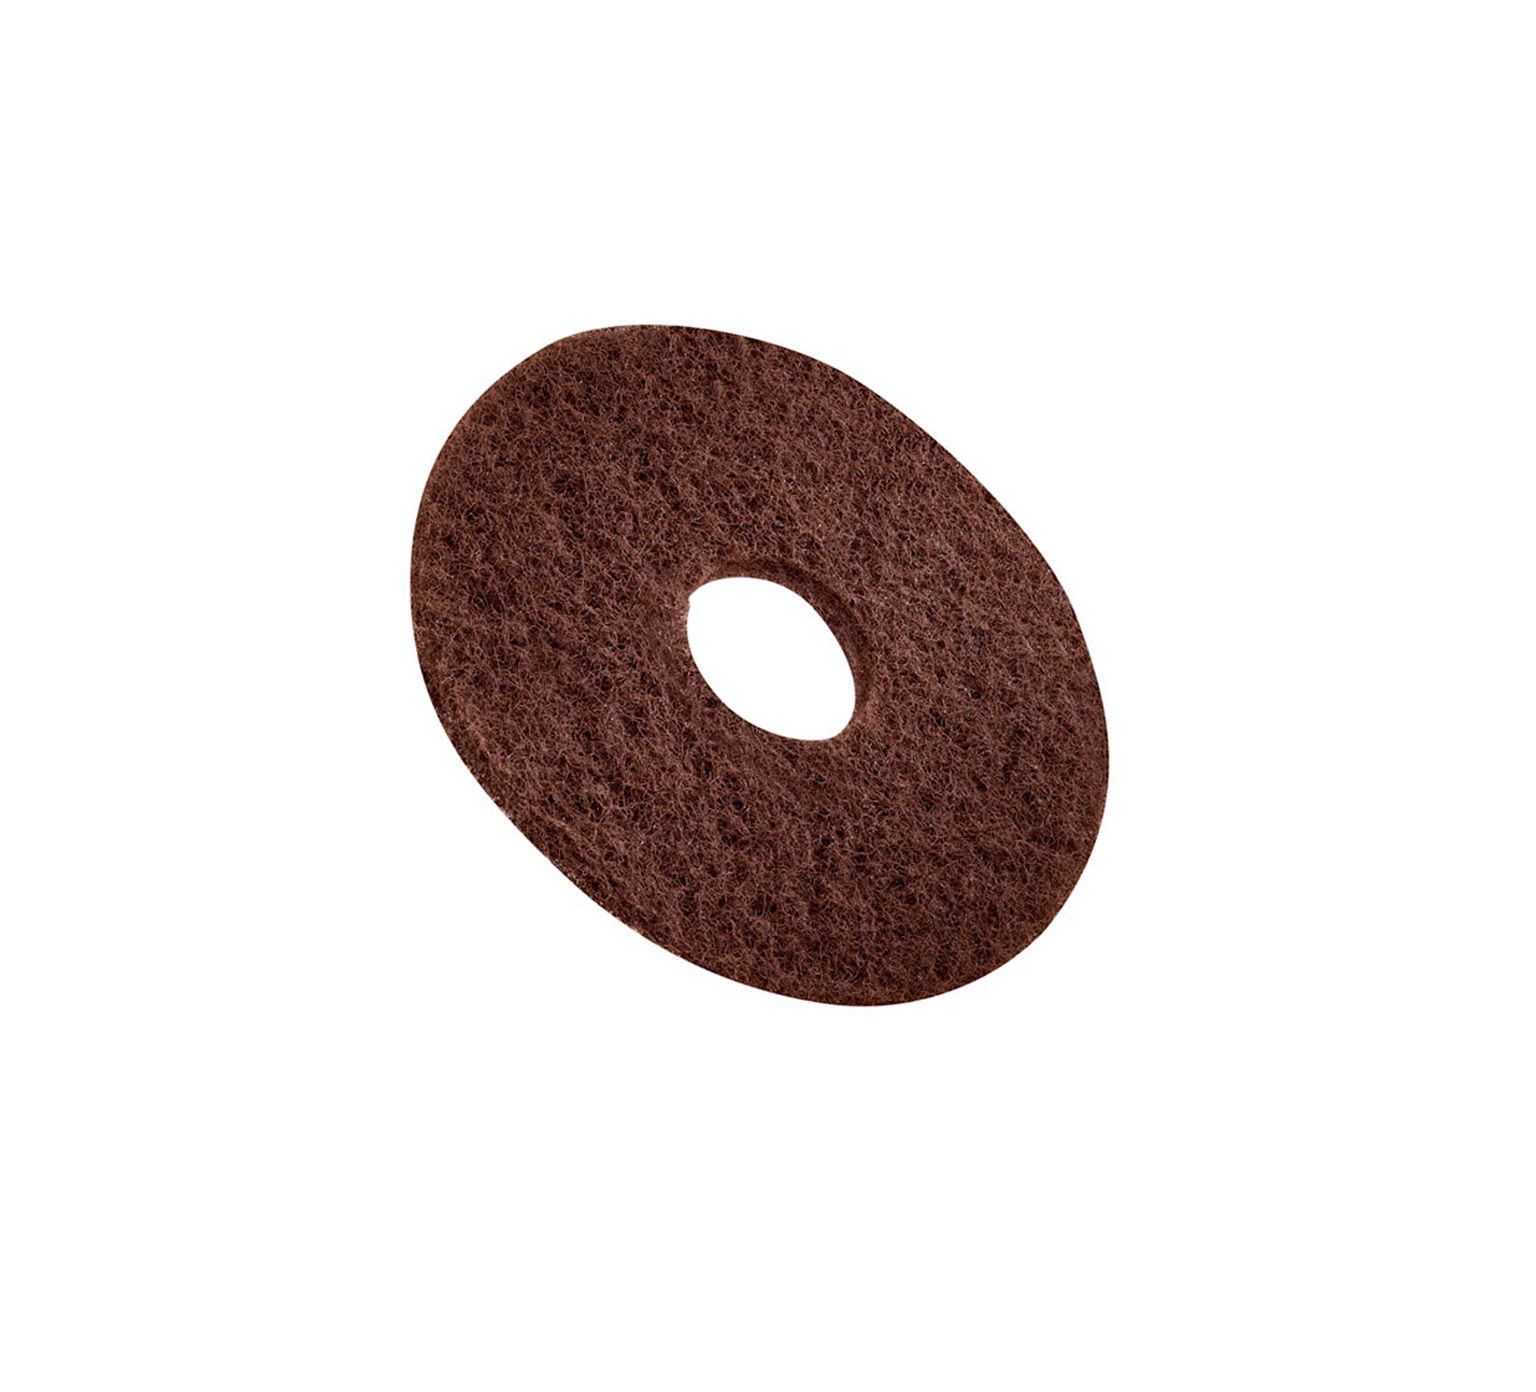 385943 3M Brown Stripping Pad – 12 in / 304.8 mm alt 1